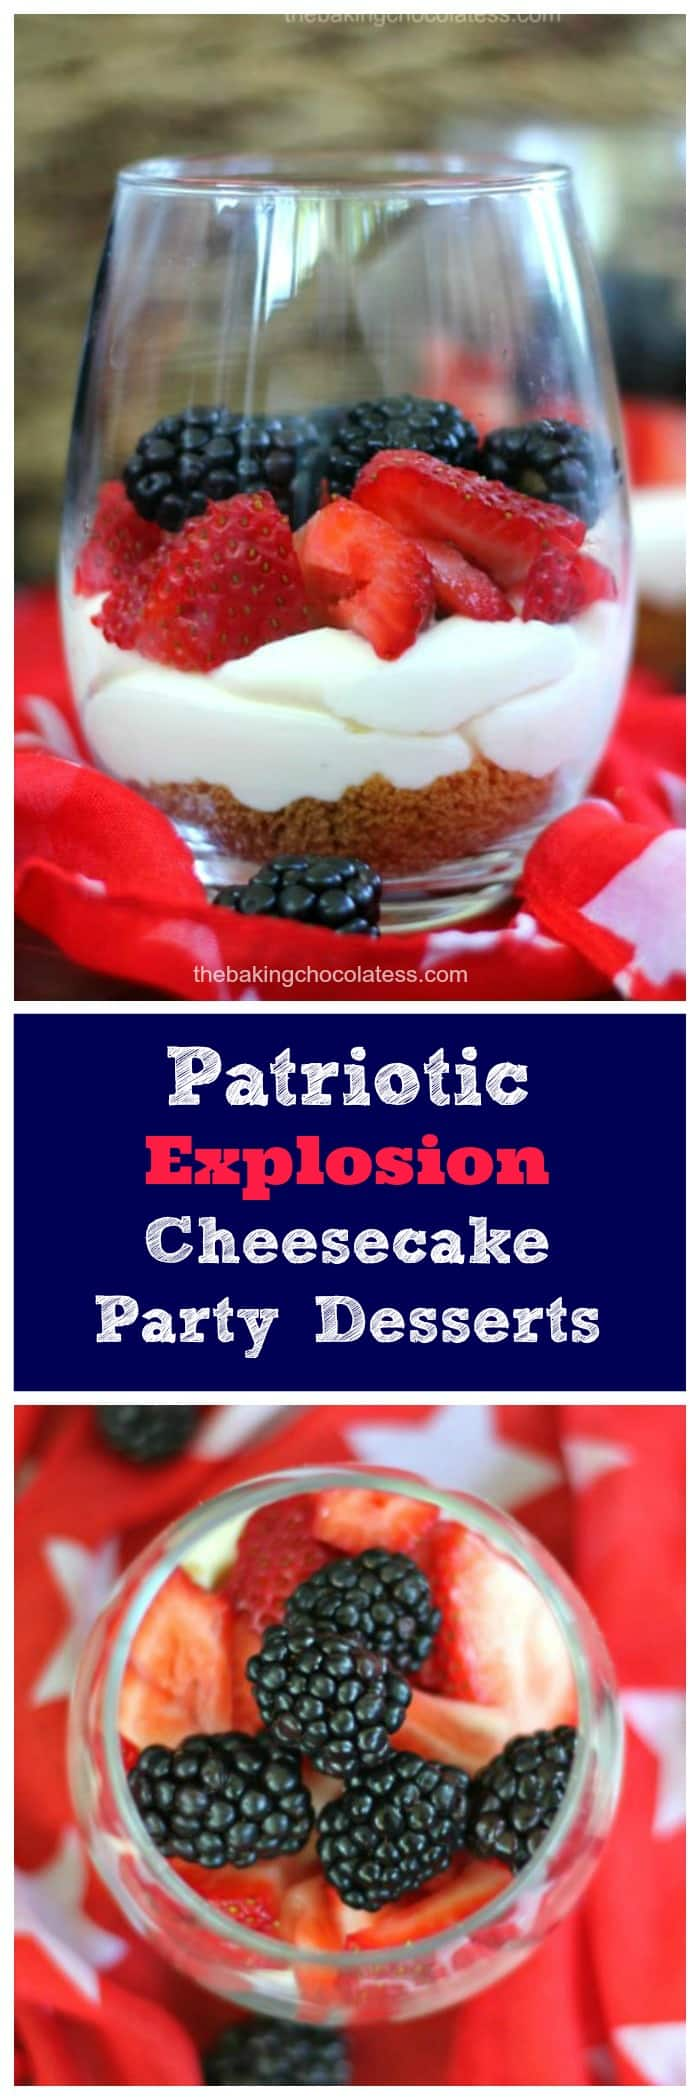 Enjoy your summer and Memorial Day Weekend with our nation's red, white and blue Patriotic Berry Explosion Cheesecake Party Desserts.